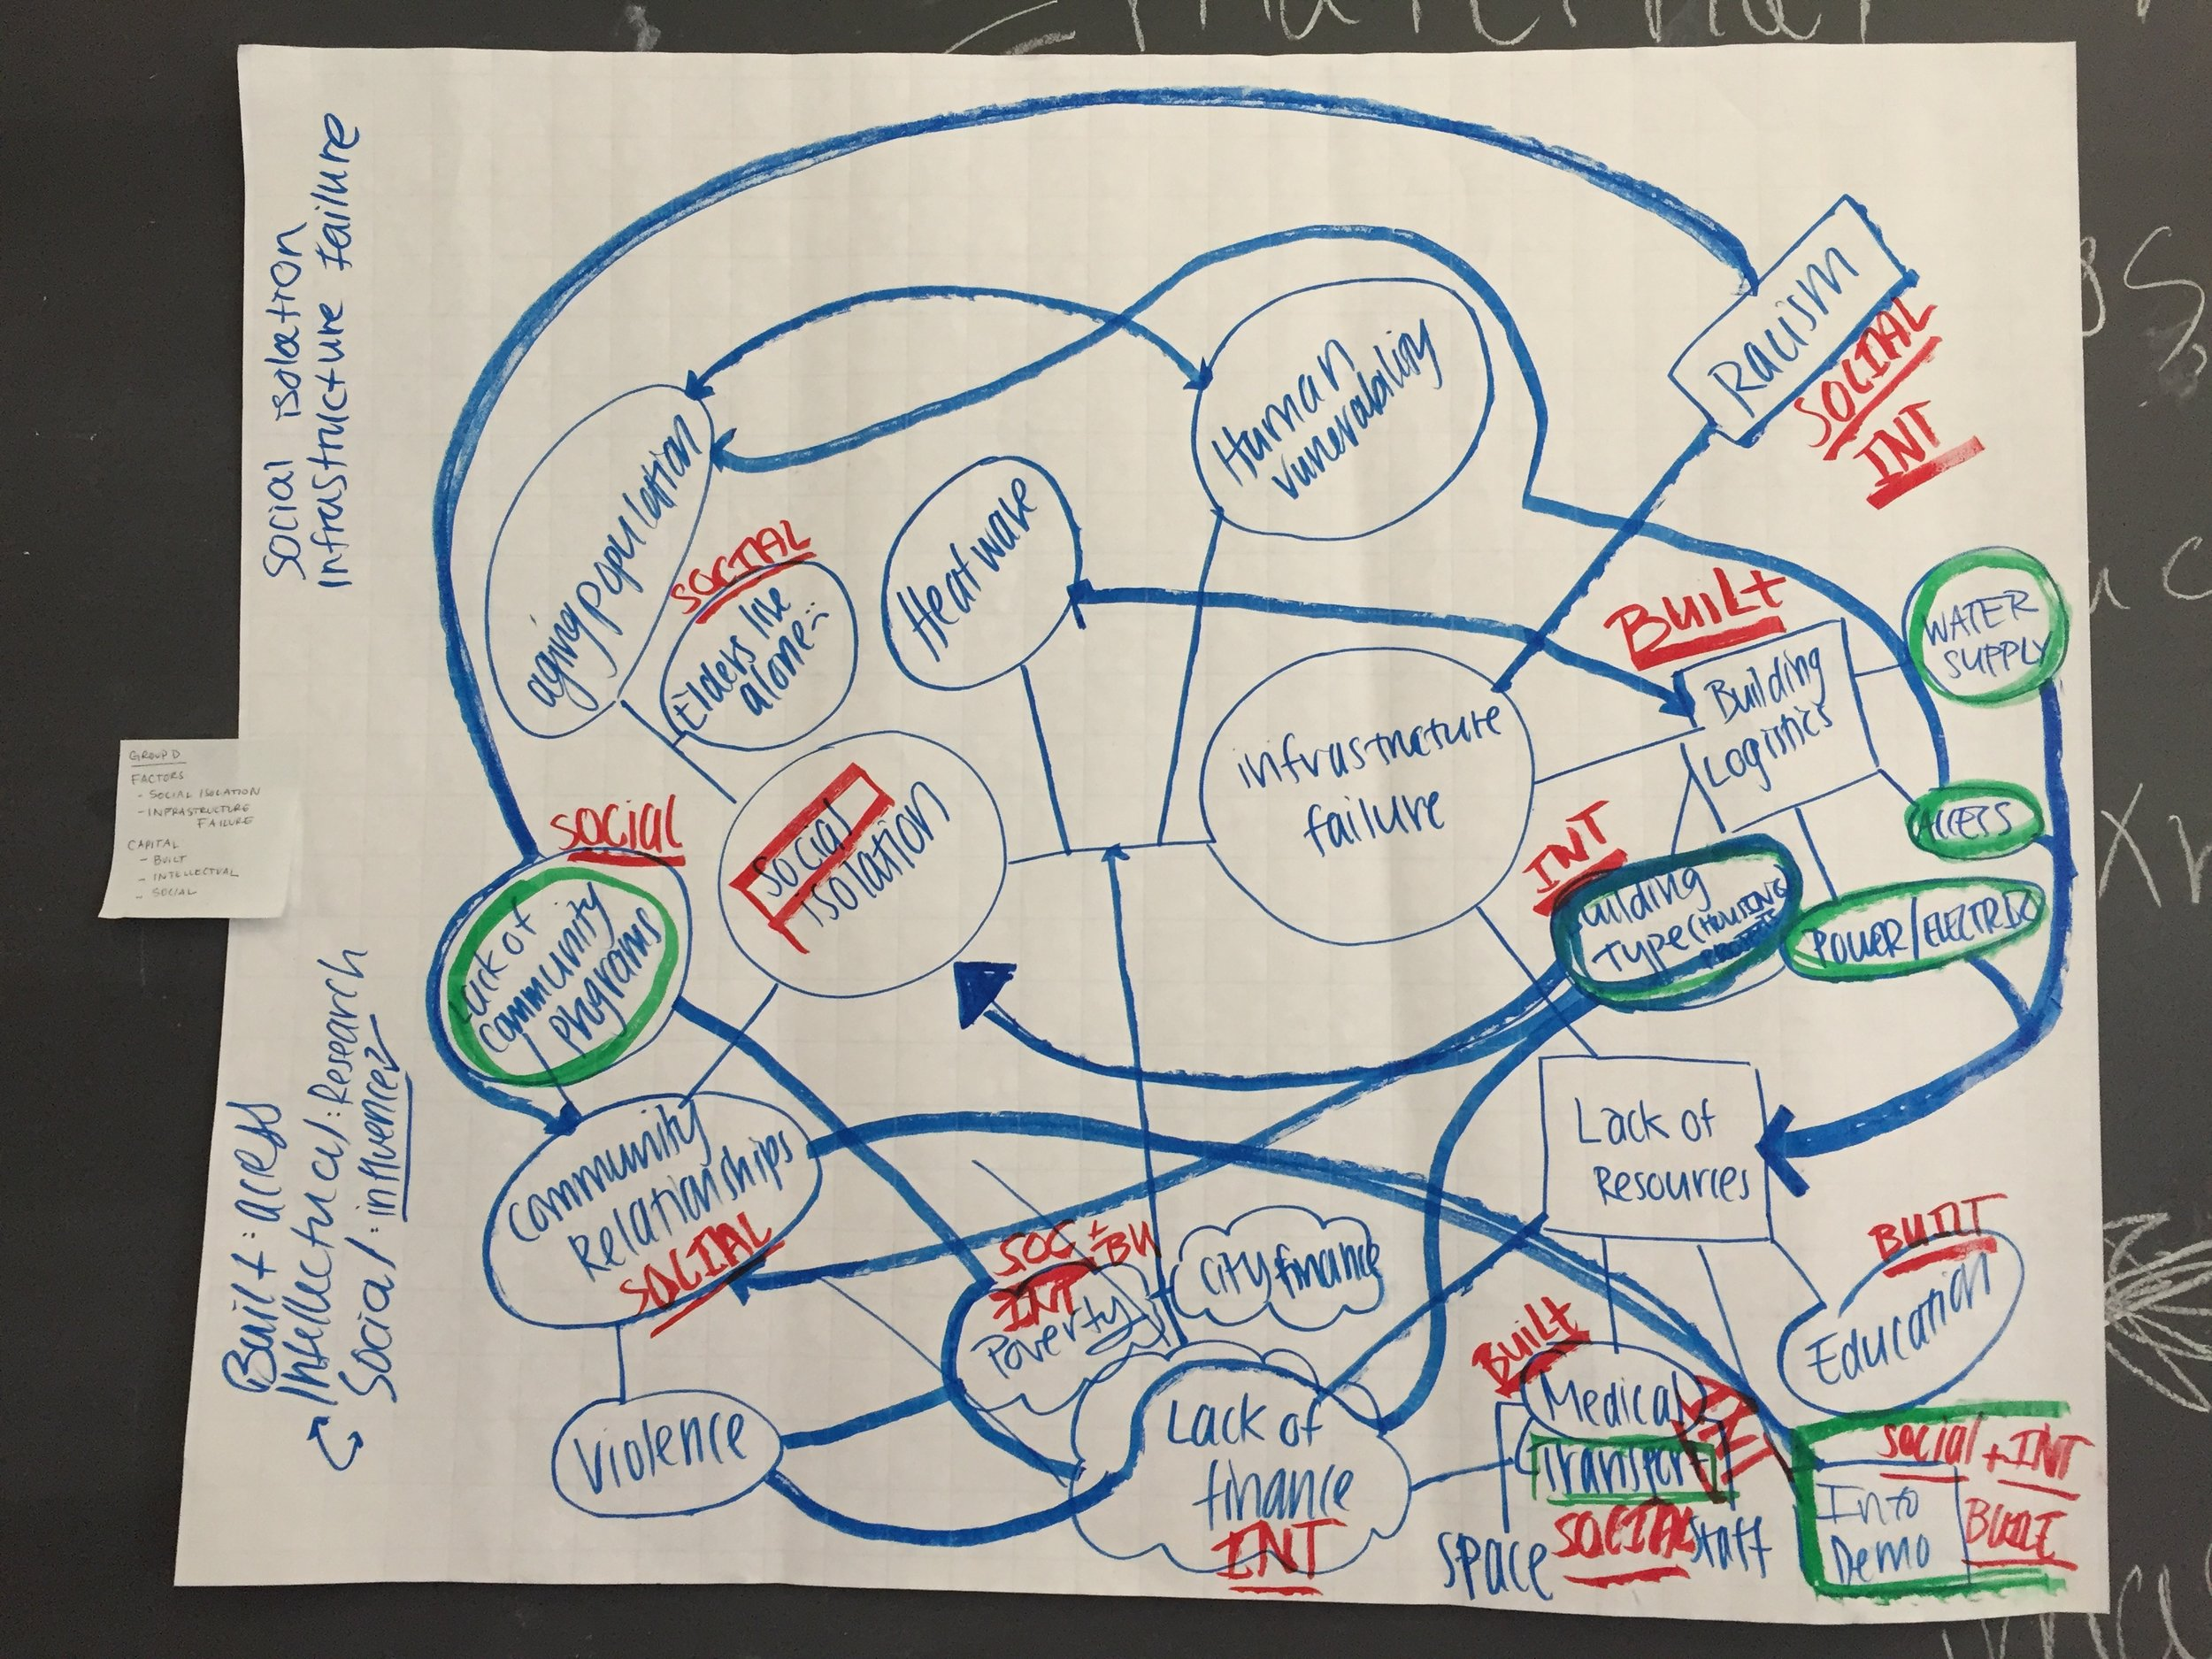 Systems Map created by Brown University's Social Innovation Students.